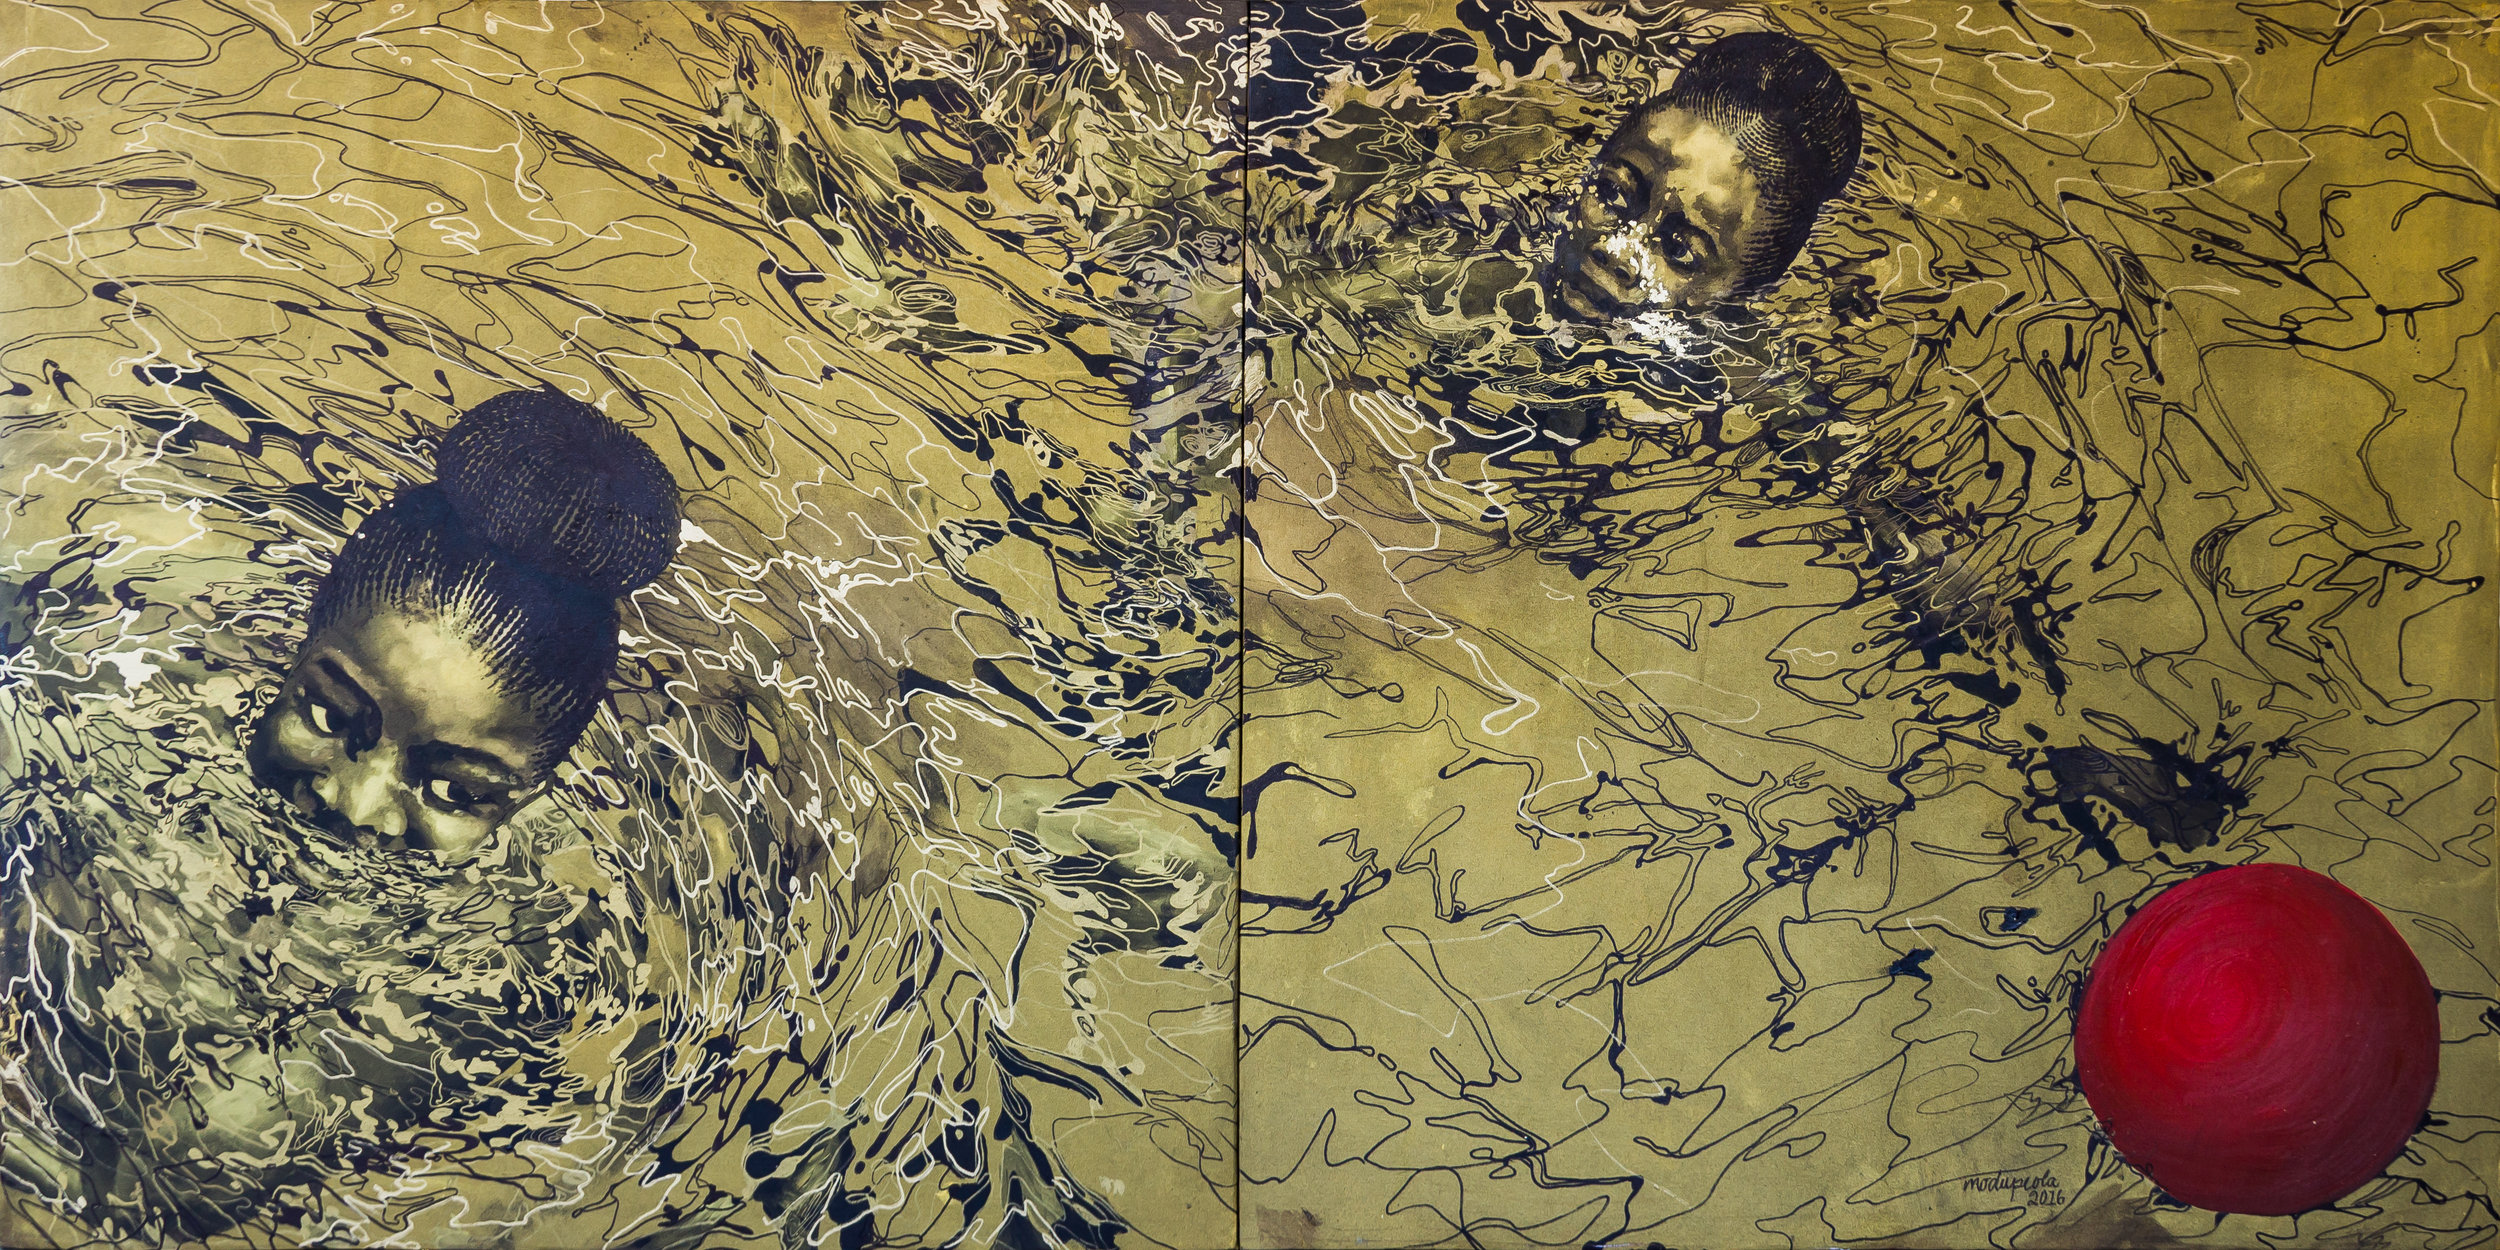 Tagged: The Race (diptych)